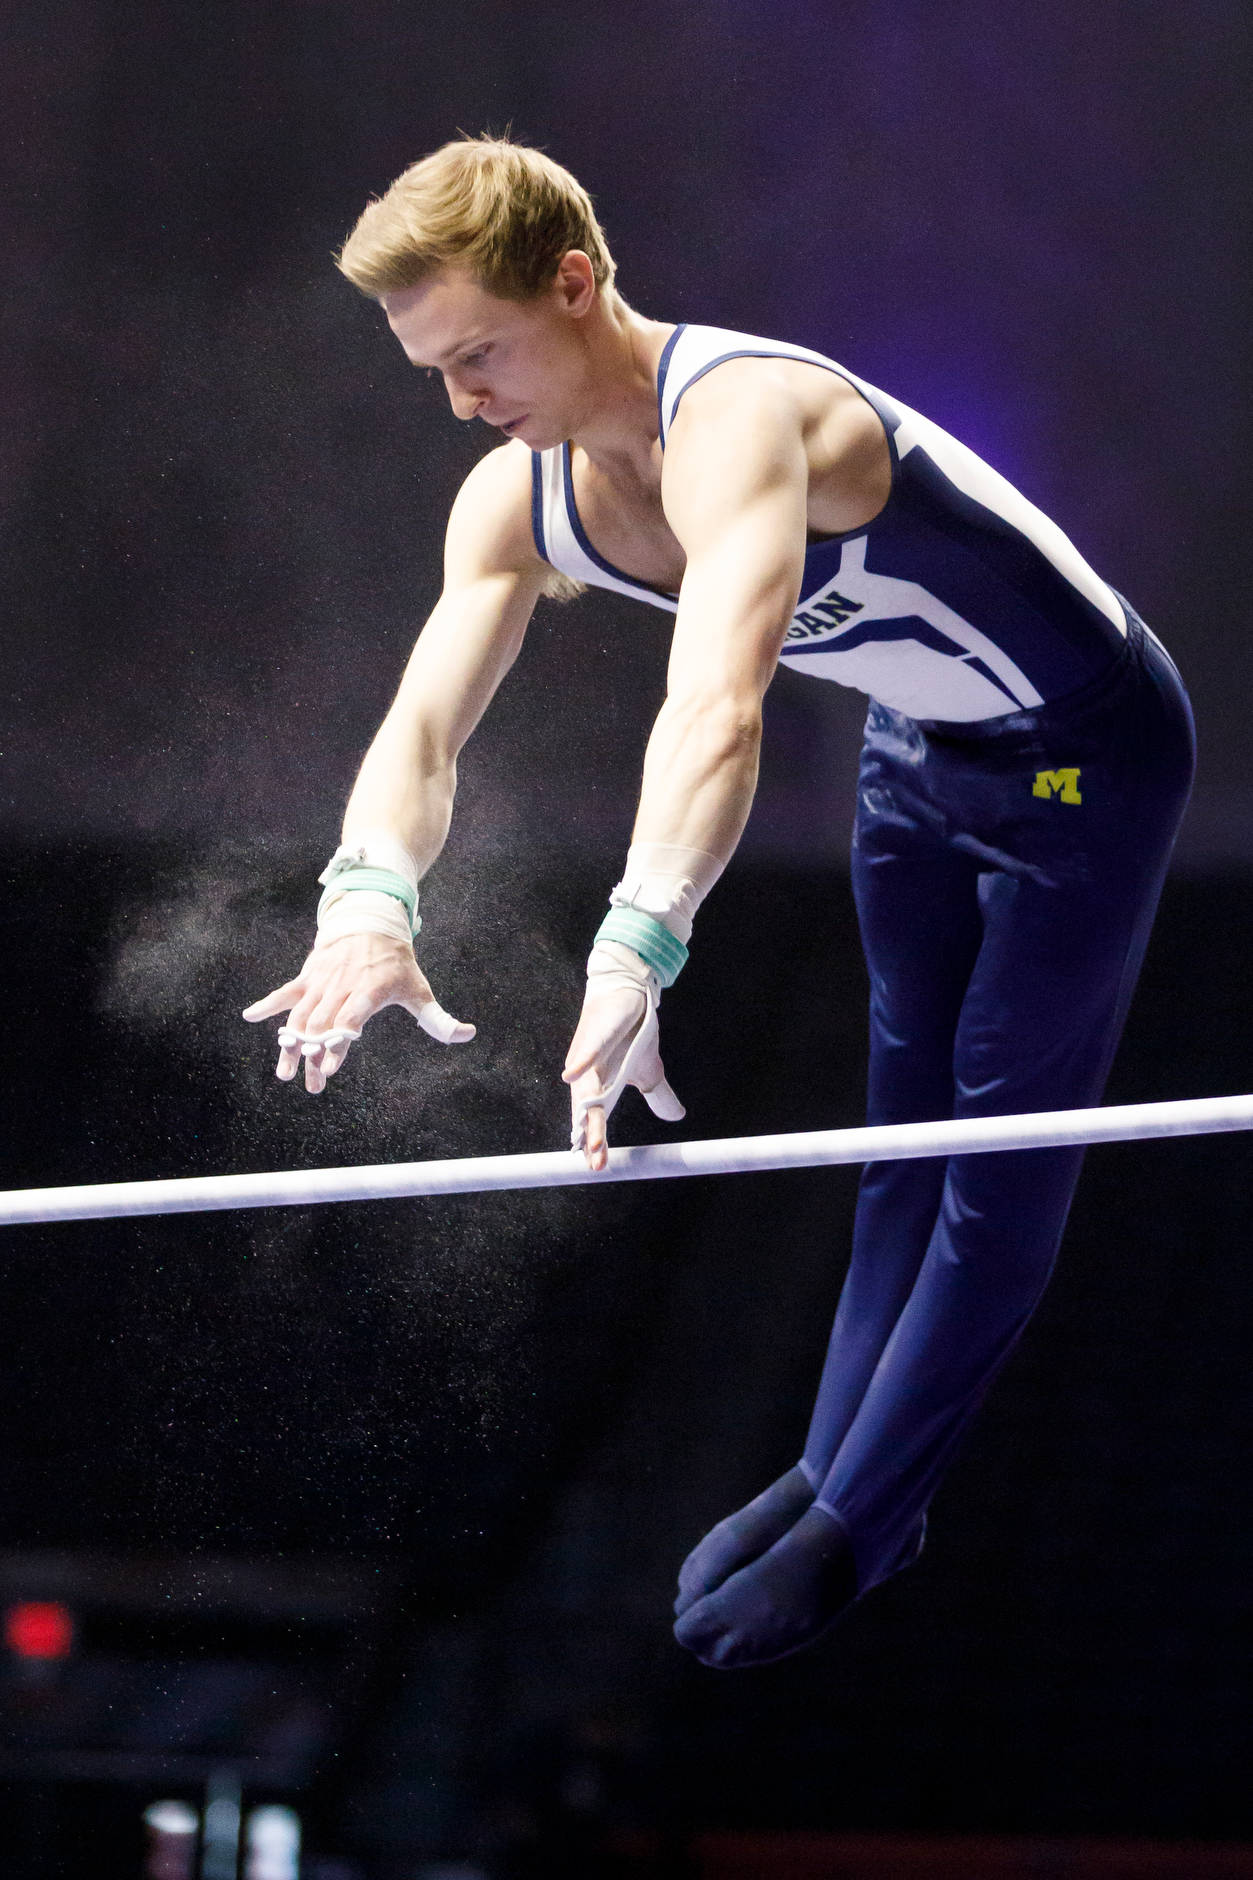 Michigan's Alec Krystek competes on the high bar at the NCAA Men's Gymnastics Championships on Friday, April 19, 2019, at the State Farm Center in Champaign, Illinois. (Photo by James Brosher)